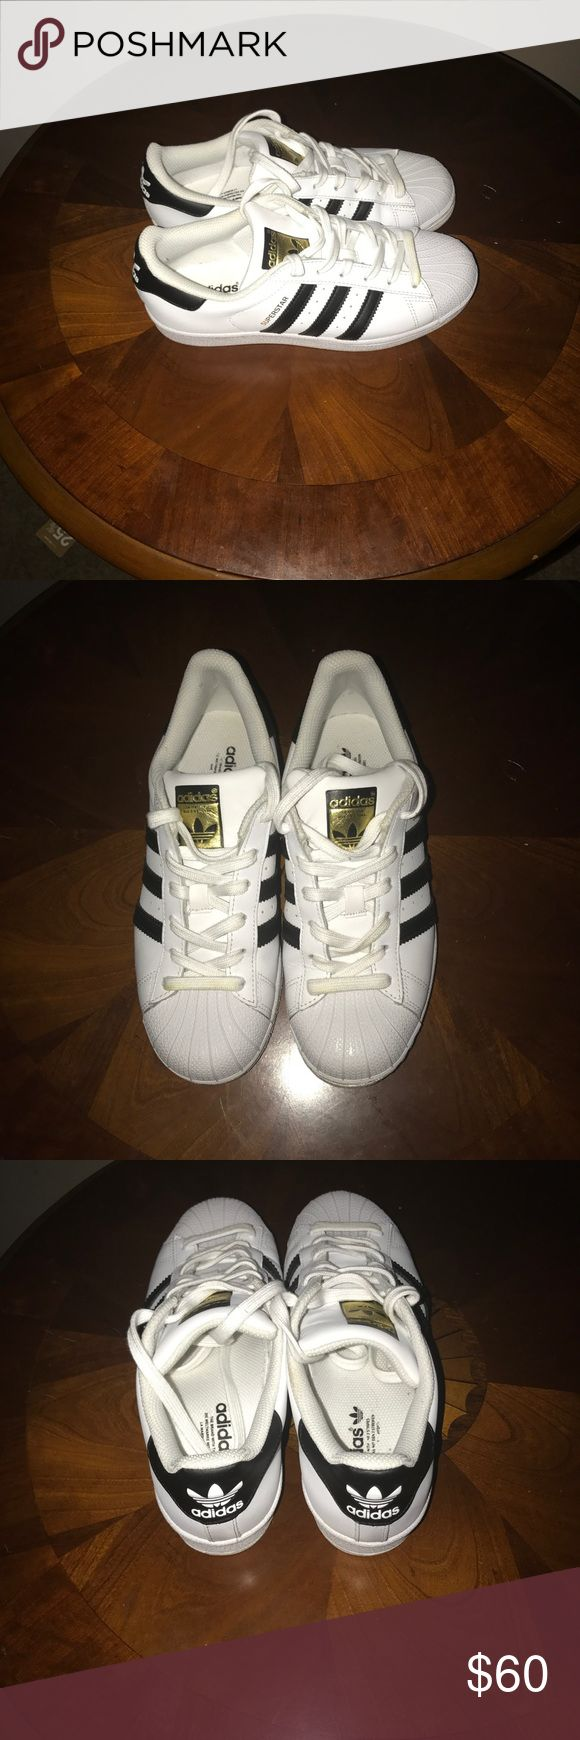 Adidas Classic Superstar Sneakers In excellent condition some minor marks on sole can be removed with nail polish remover adidas Shoes Sneakers